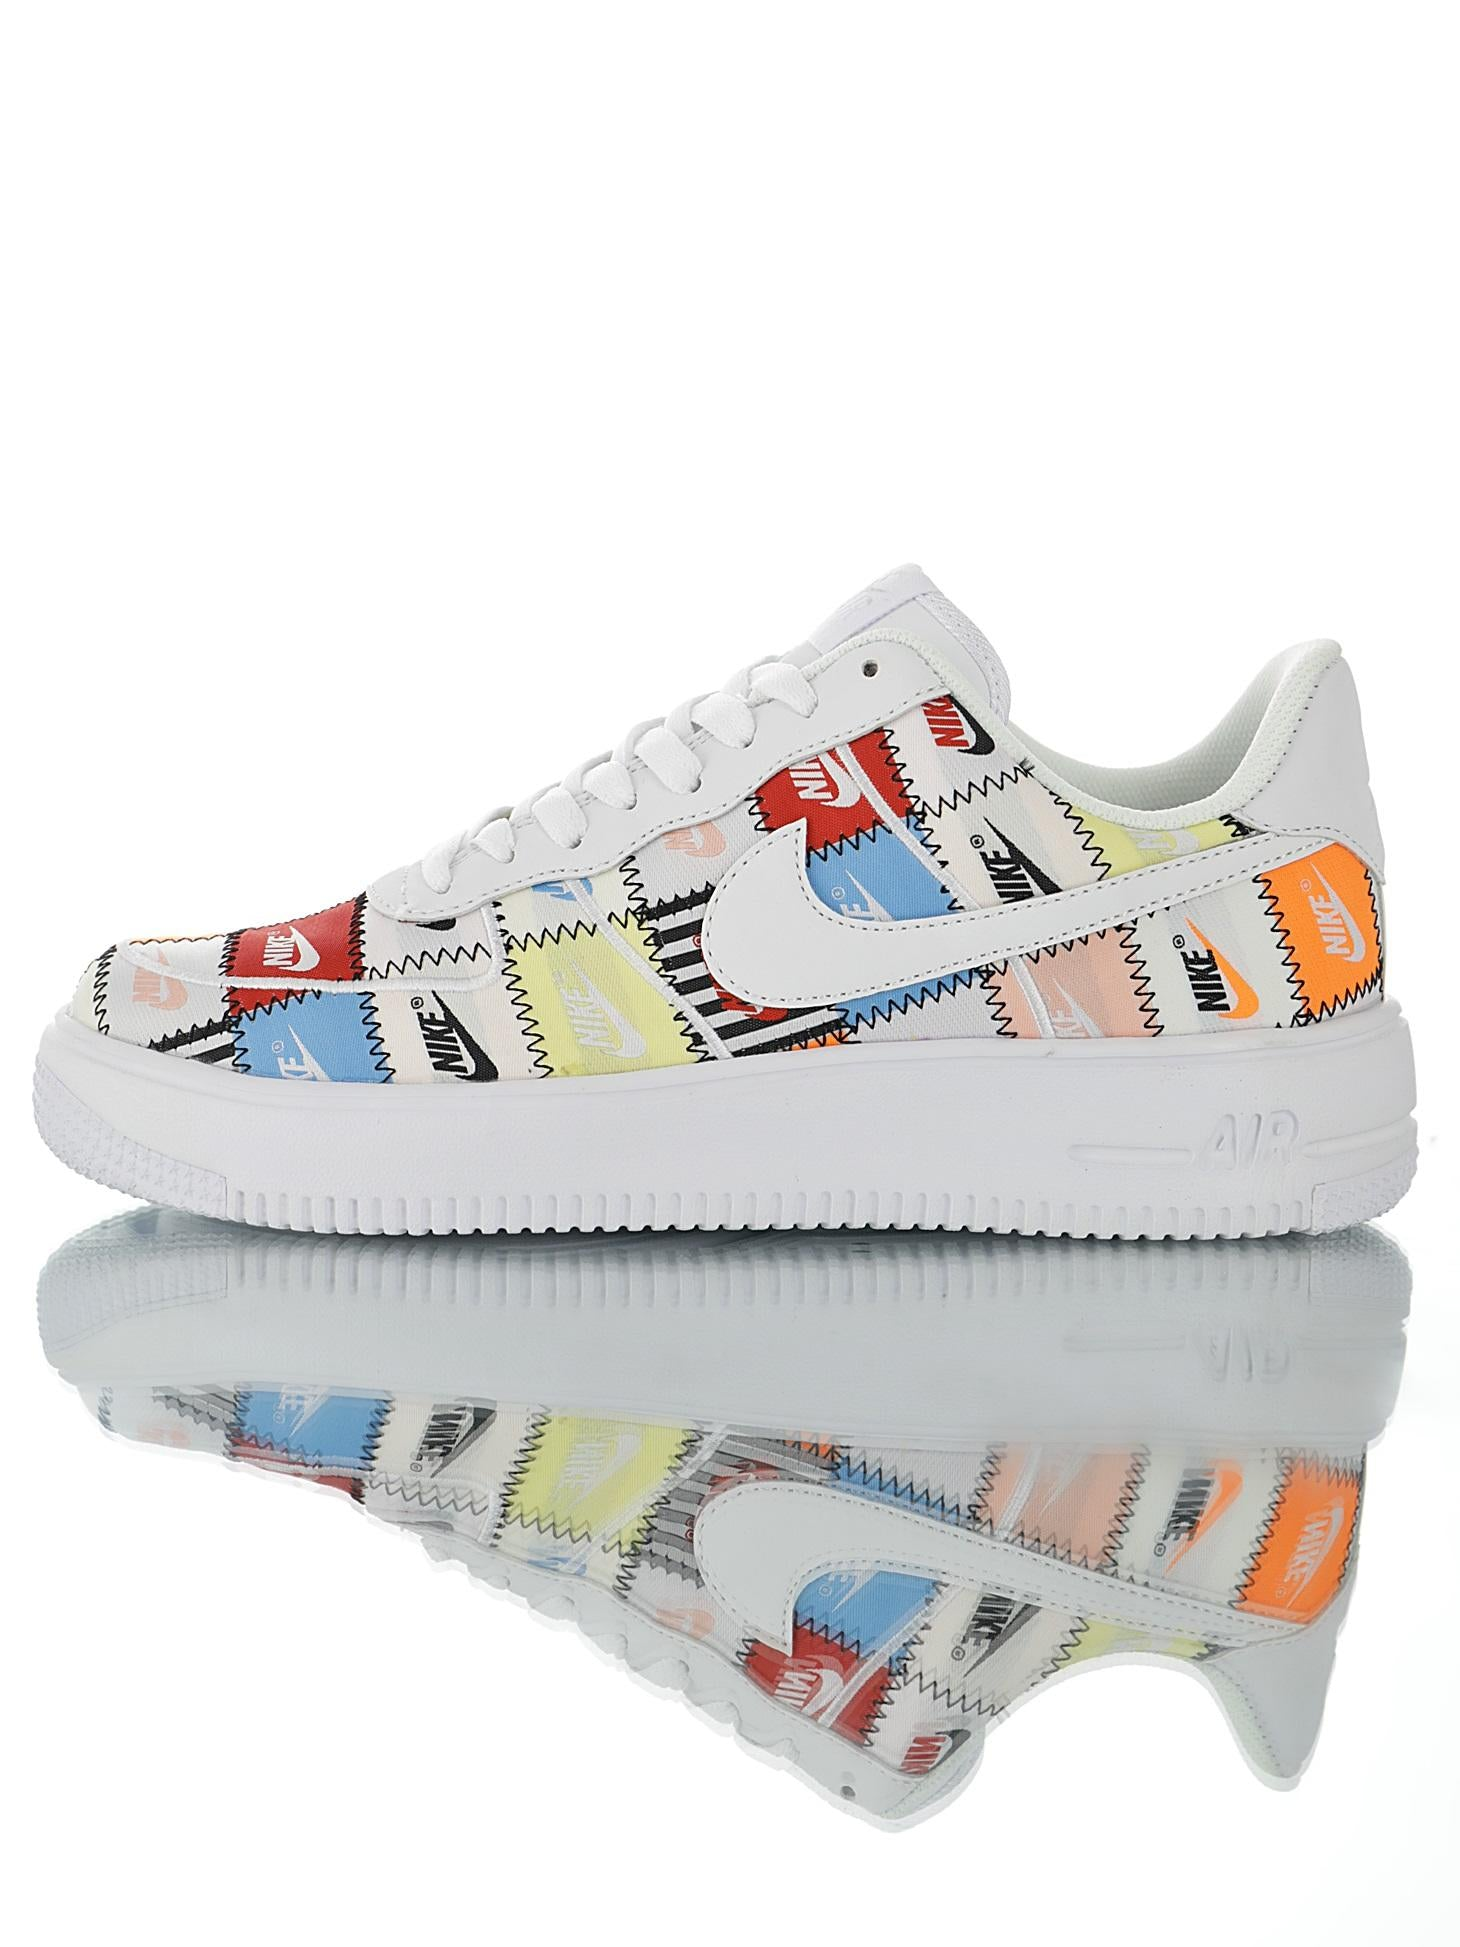 new lower prices super cute affordable price Nike Air Force 1 Flyknit 2.0 Stitches AV3042-800 – Haim Import